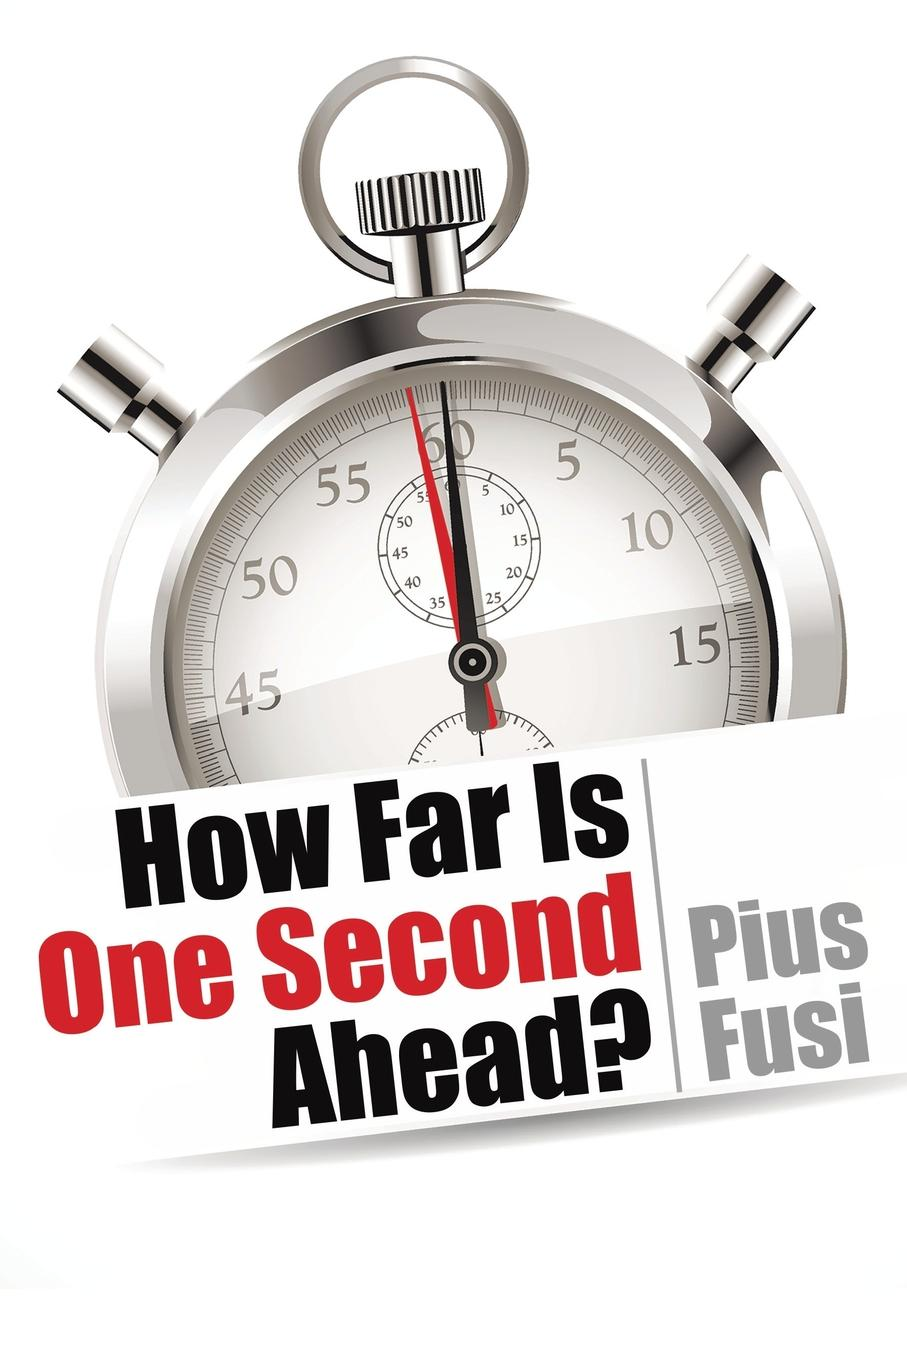 Pius Fusi How Far Is One Second Ahead. guy champniss brand valued how socially valued brands hold the key to a sustainable future and business success